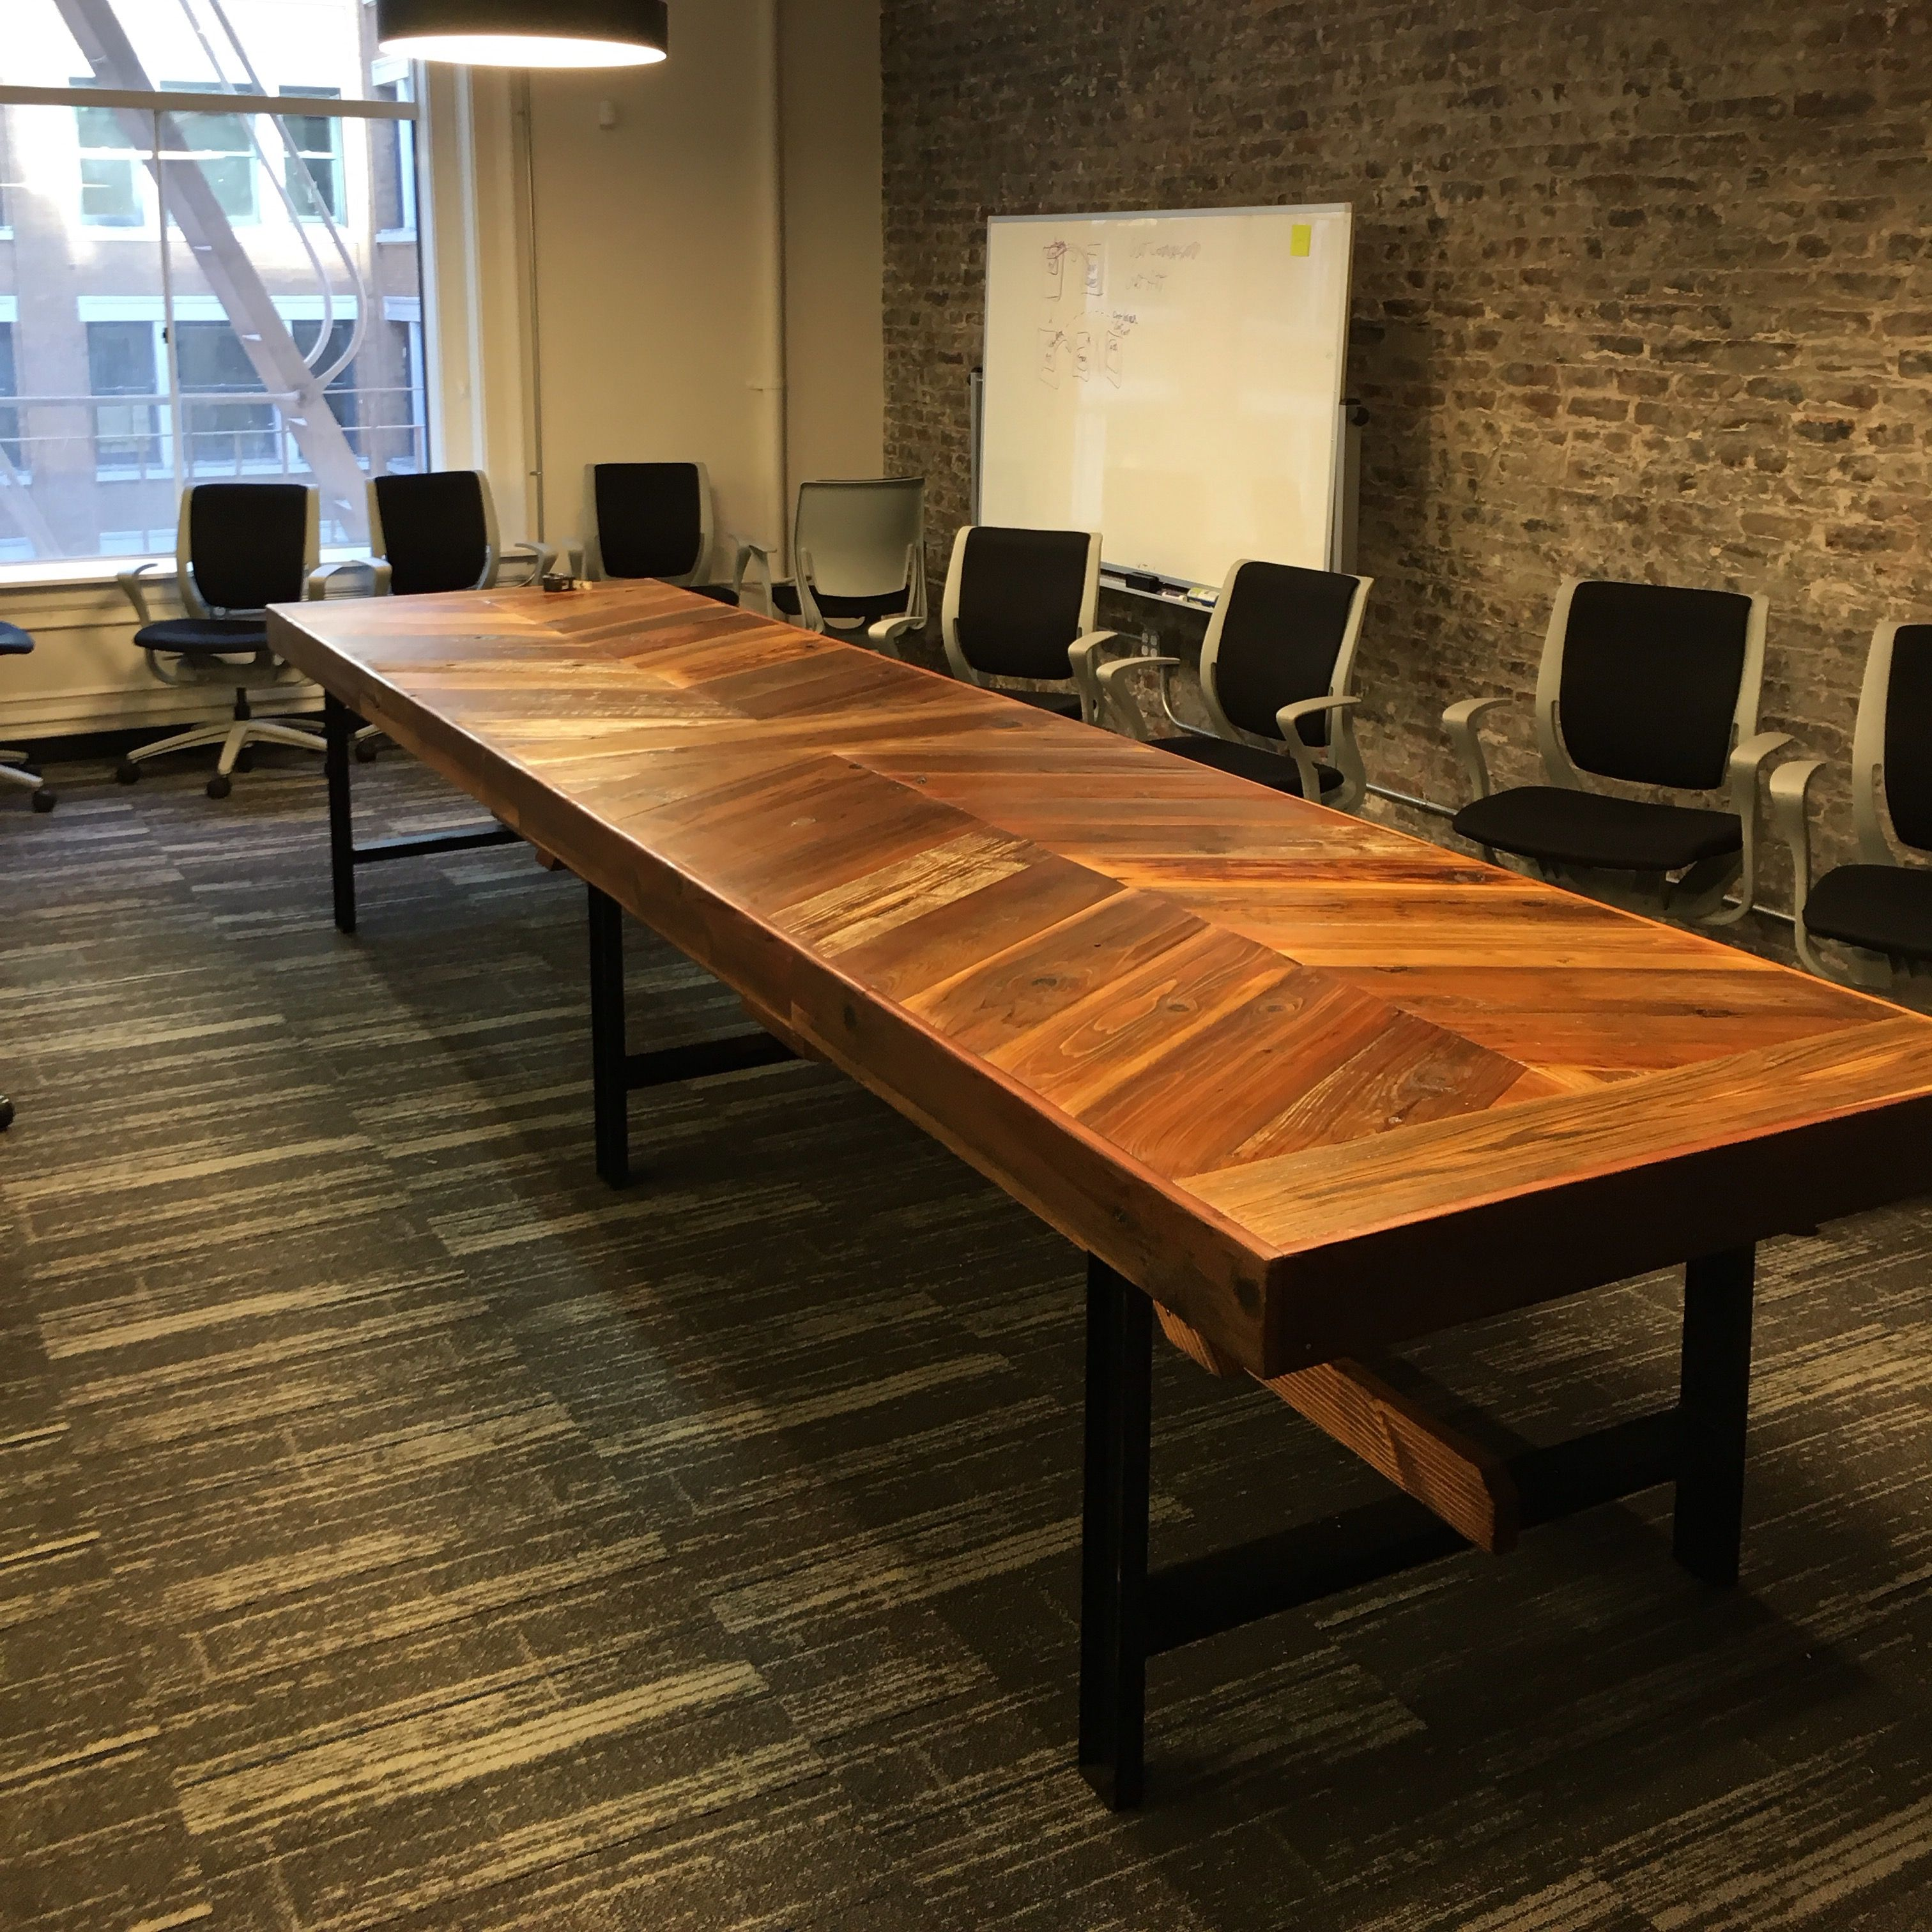 used conference table chairs posture chair sitting hand crafted reclaimed wood chevron by